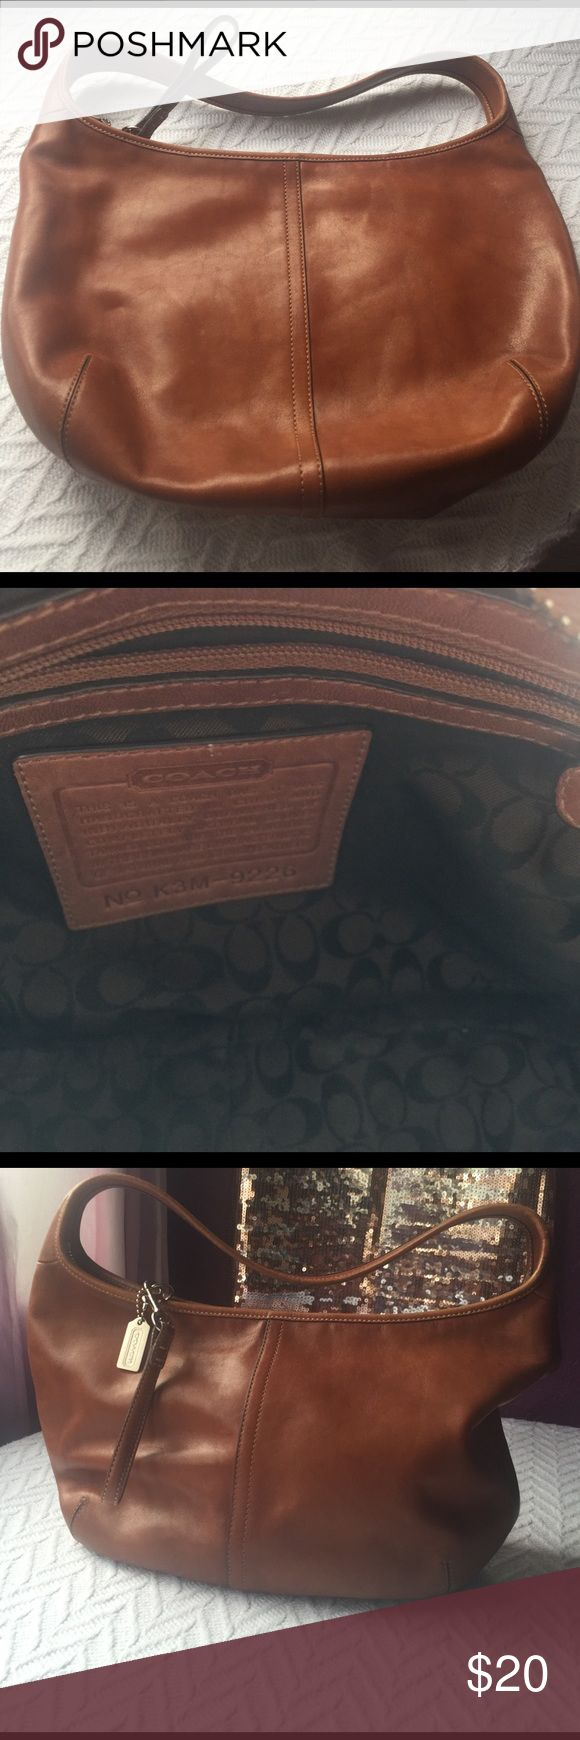 Coach- Hobo Bag Coach- Leather Hobo Bag, some flaws as shown on pic. Coach Bags Hobos